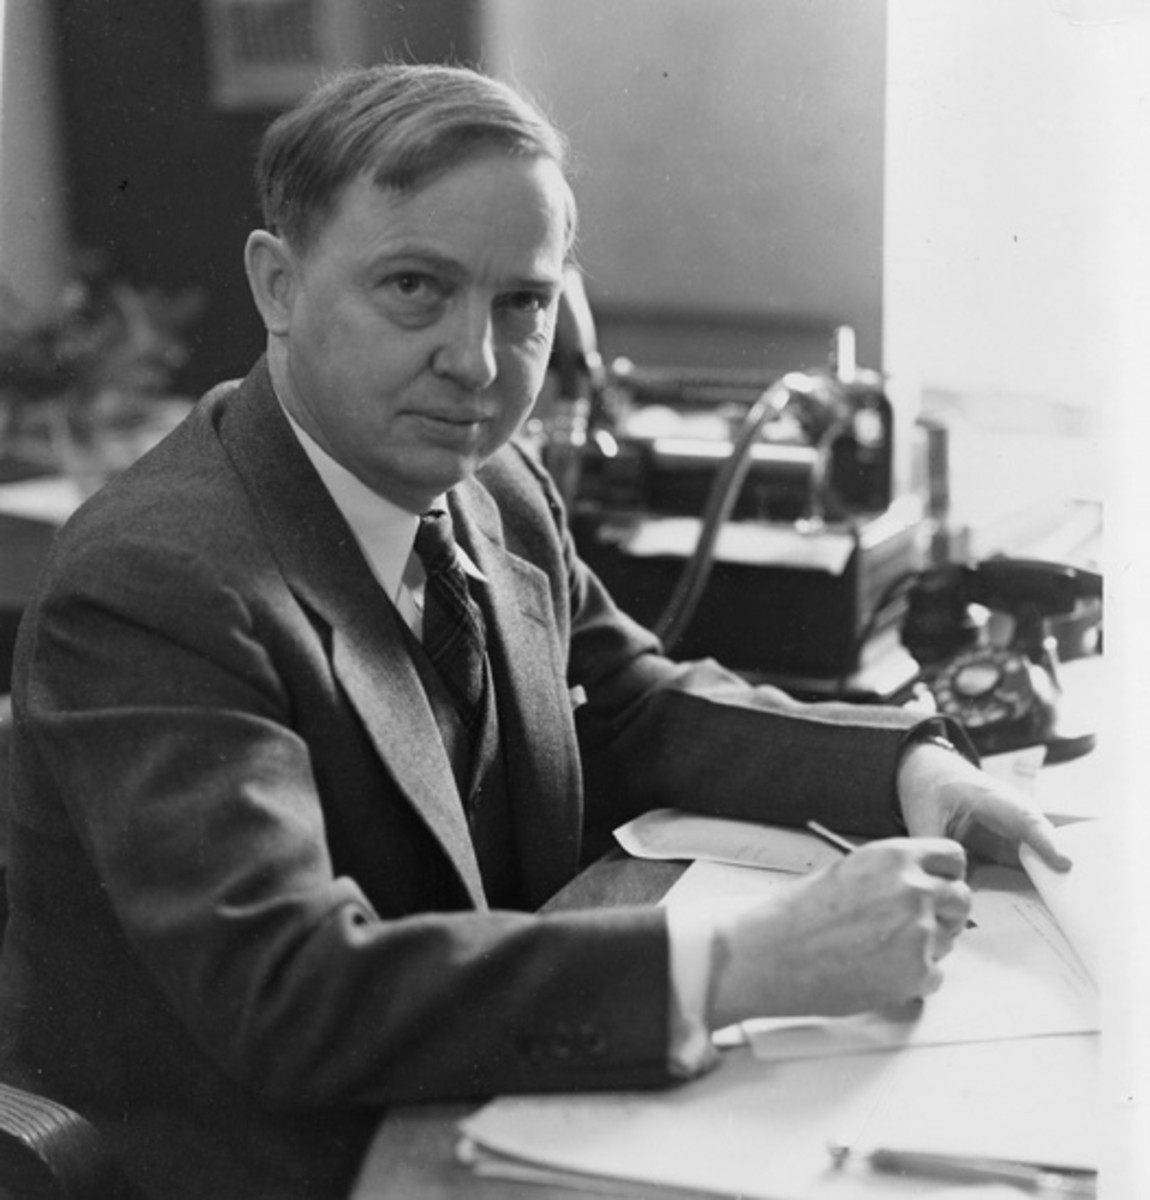 harlow-shapley-an-american-astronomer-who-measured-the-galaxy